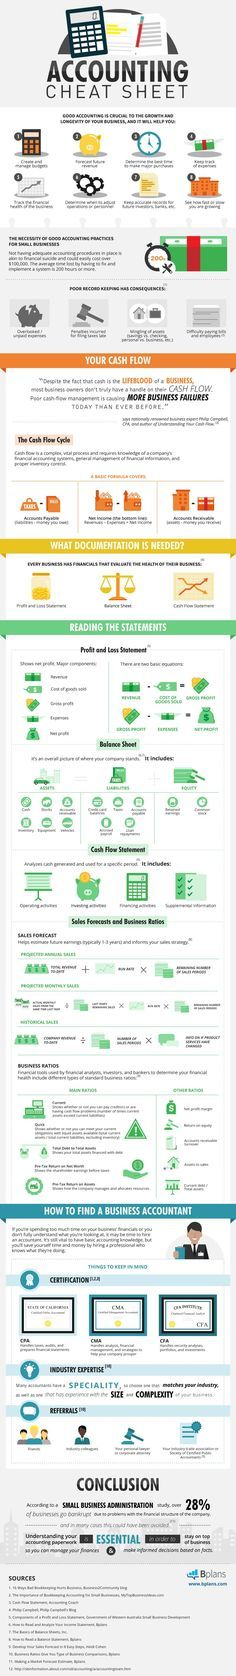 Best 25+ Accounting basics ideas on Pinterest Accounting help - nonprofit balance sheet